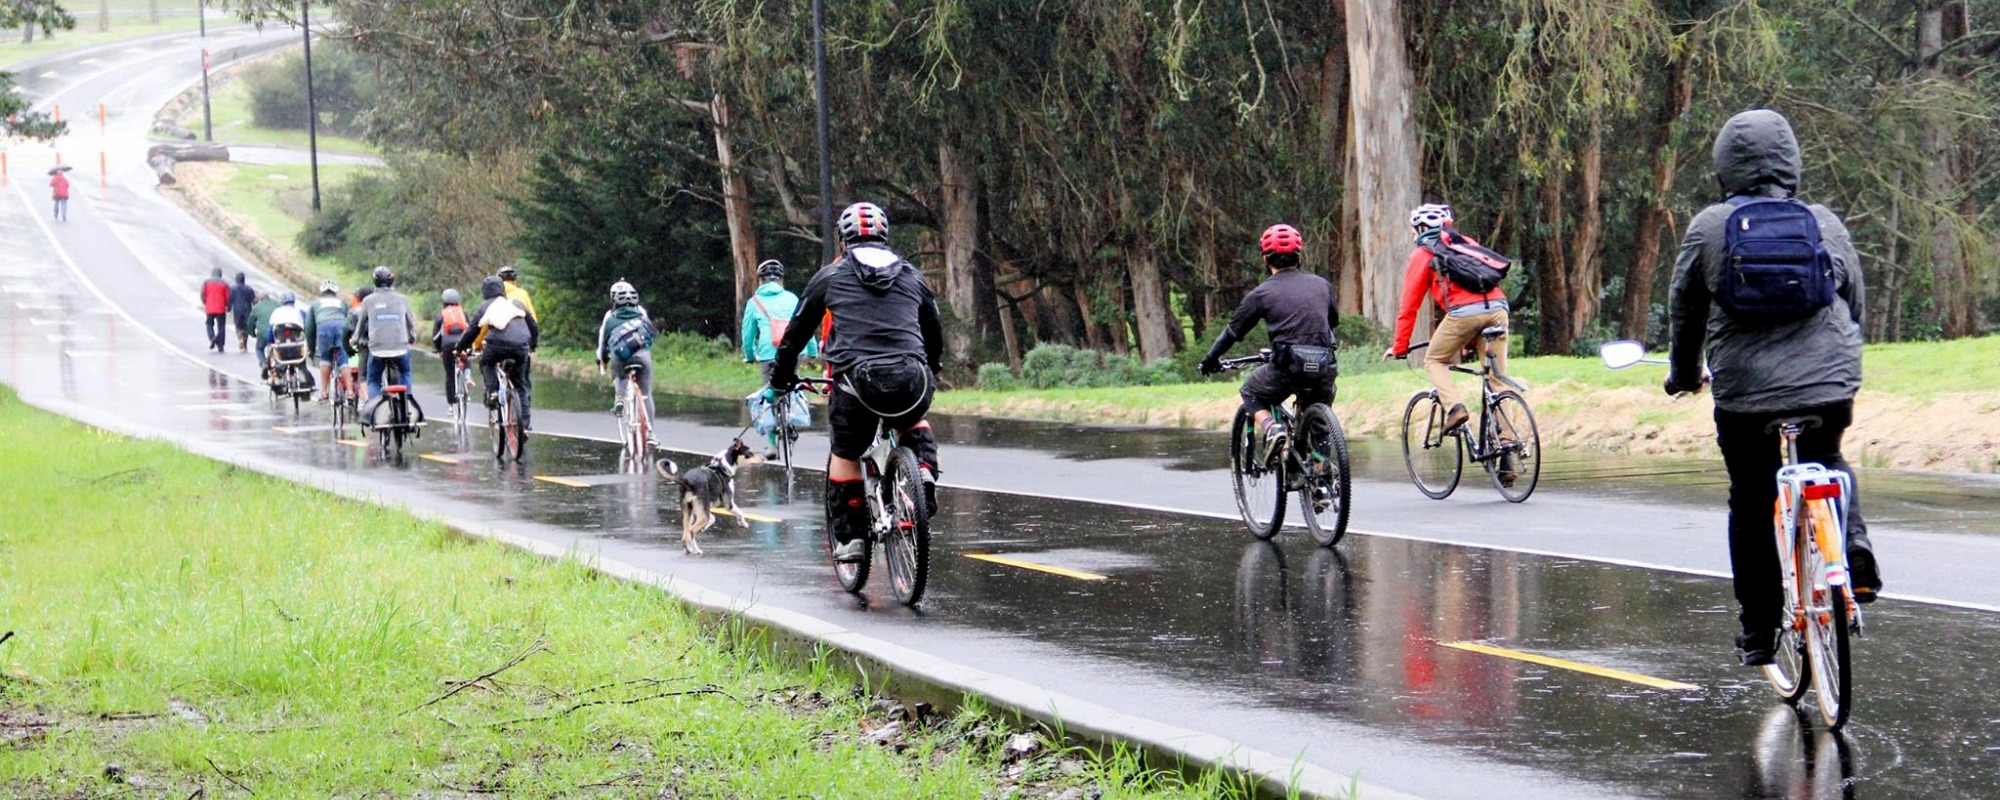 bikers on a rainy day on Mansell